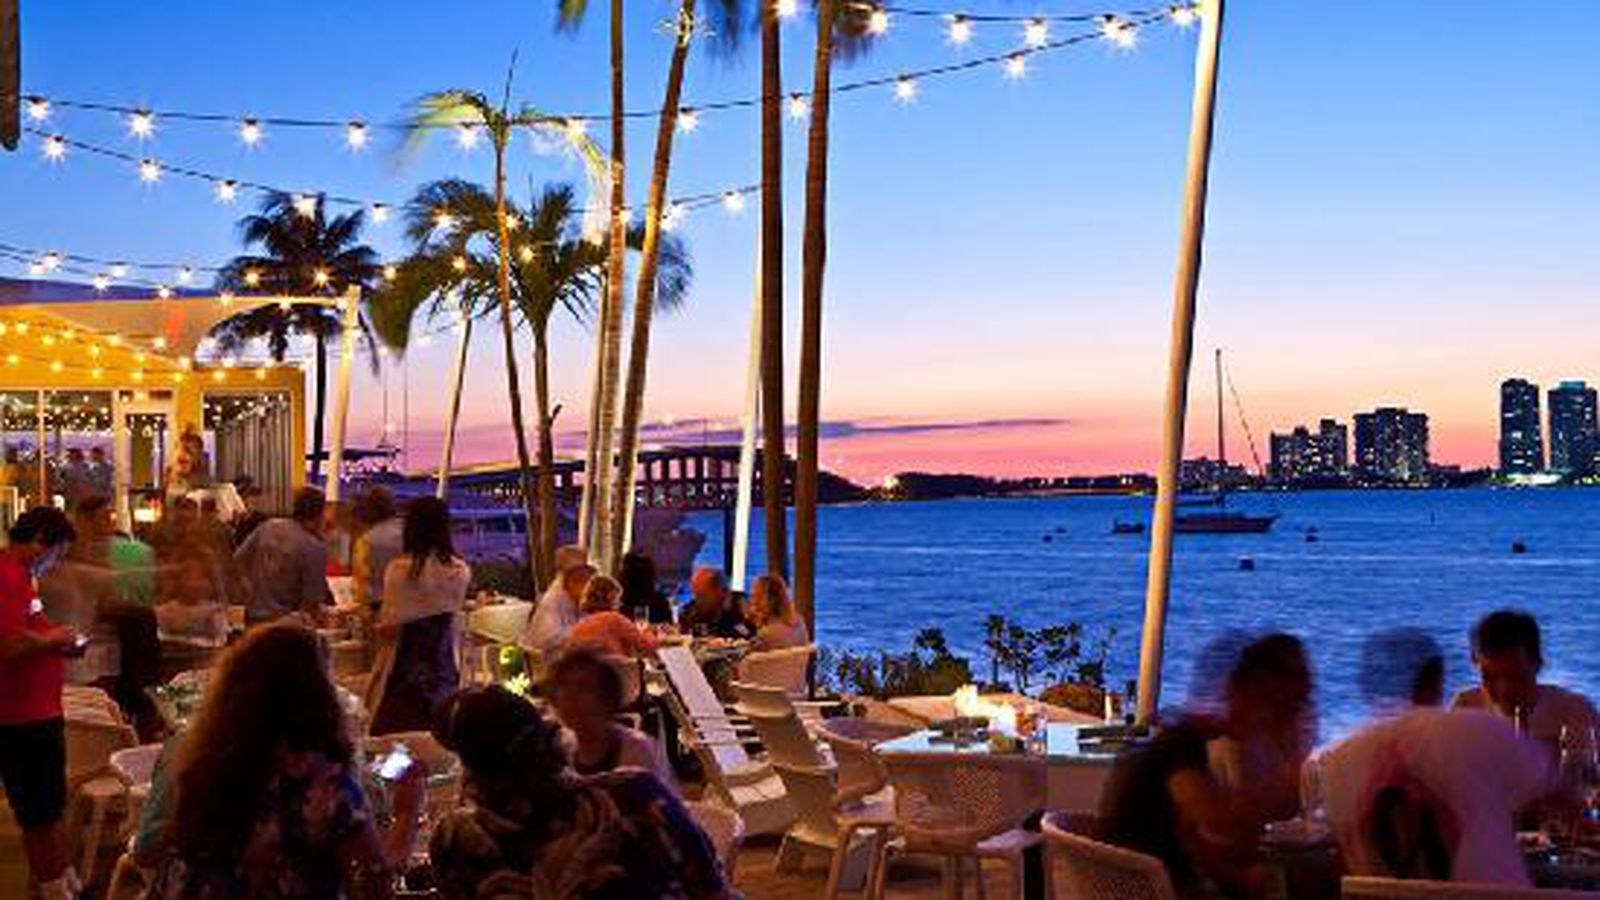 Waterfront dining in miami 12 great spots eater miami for Garcia s seafood grille fish market miami fl